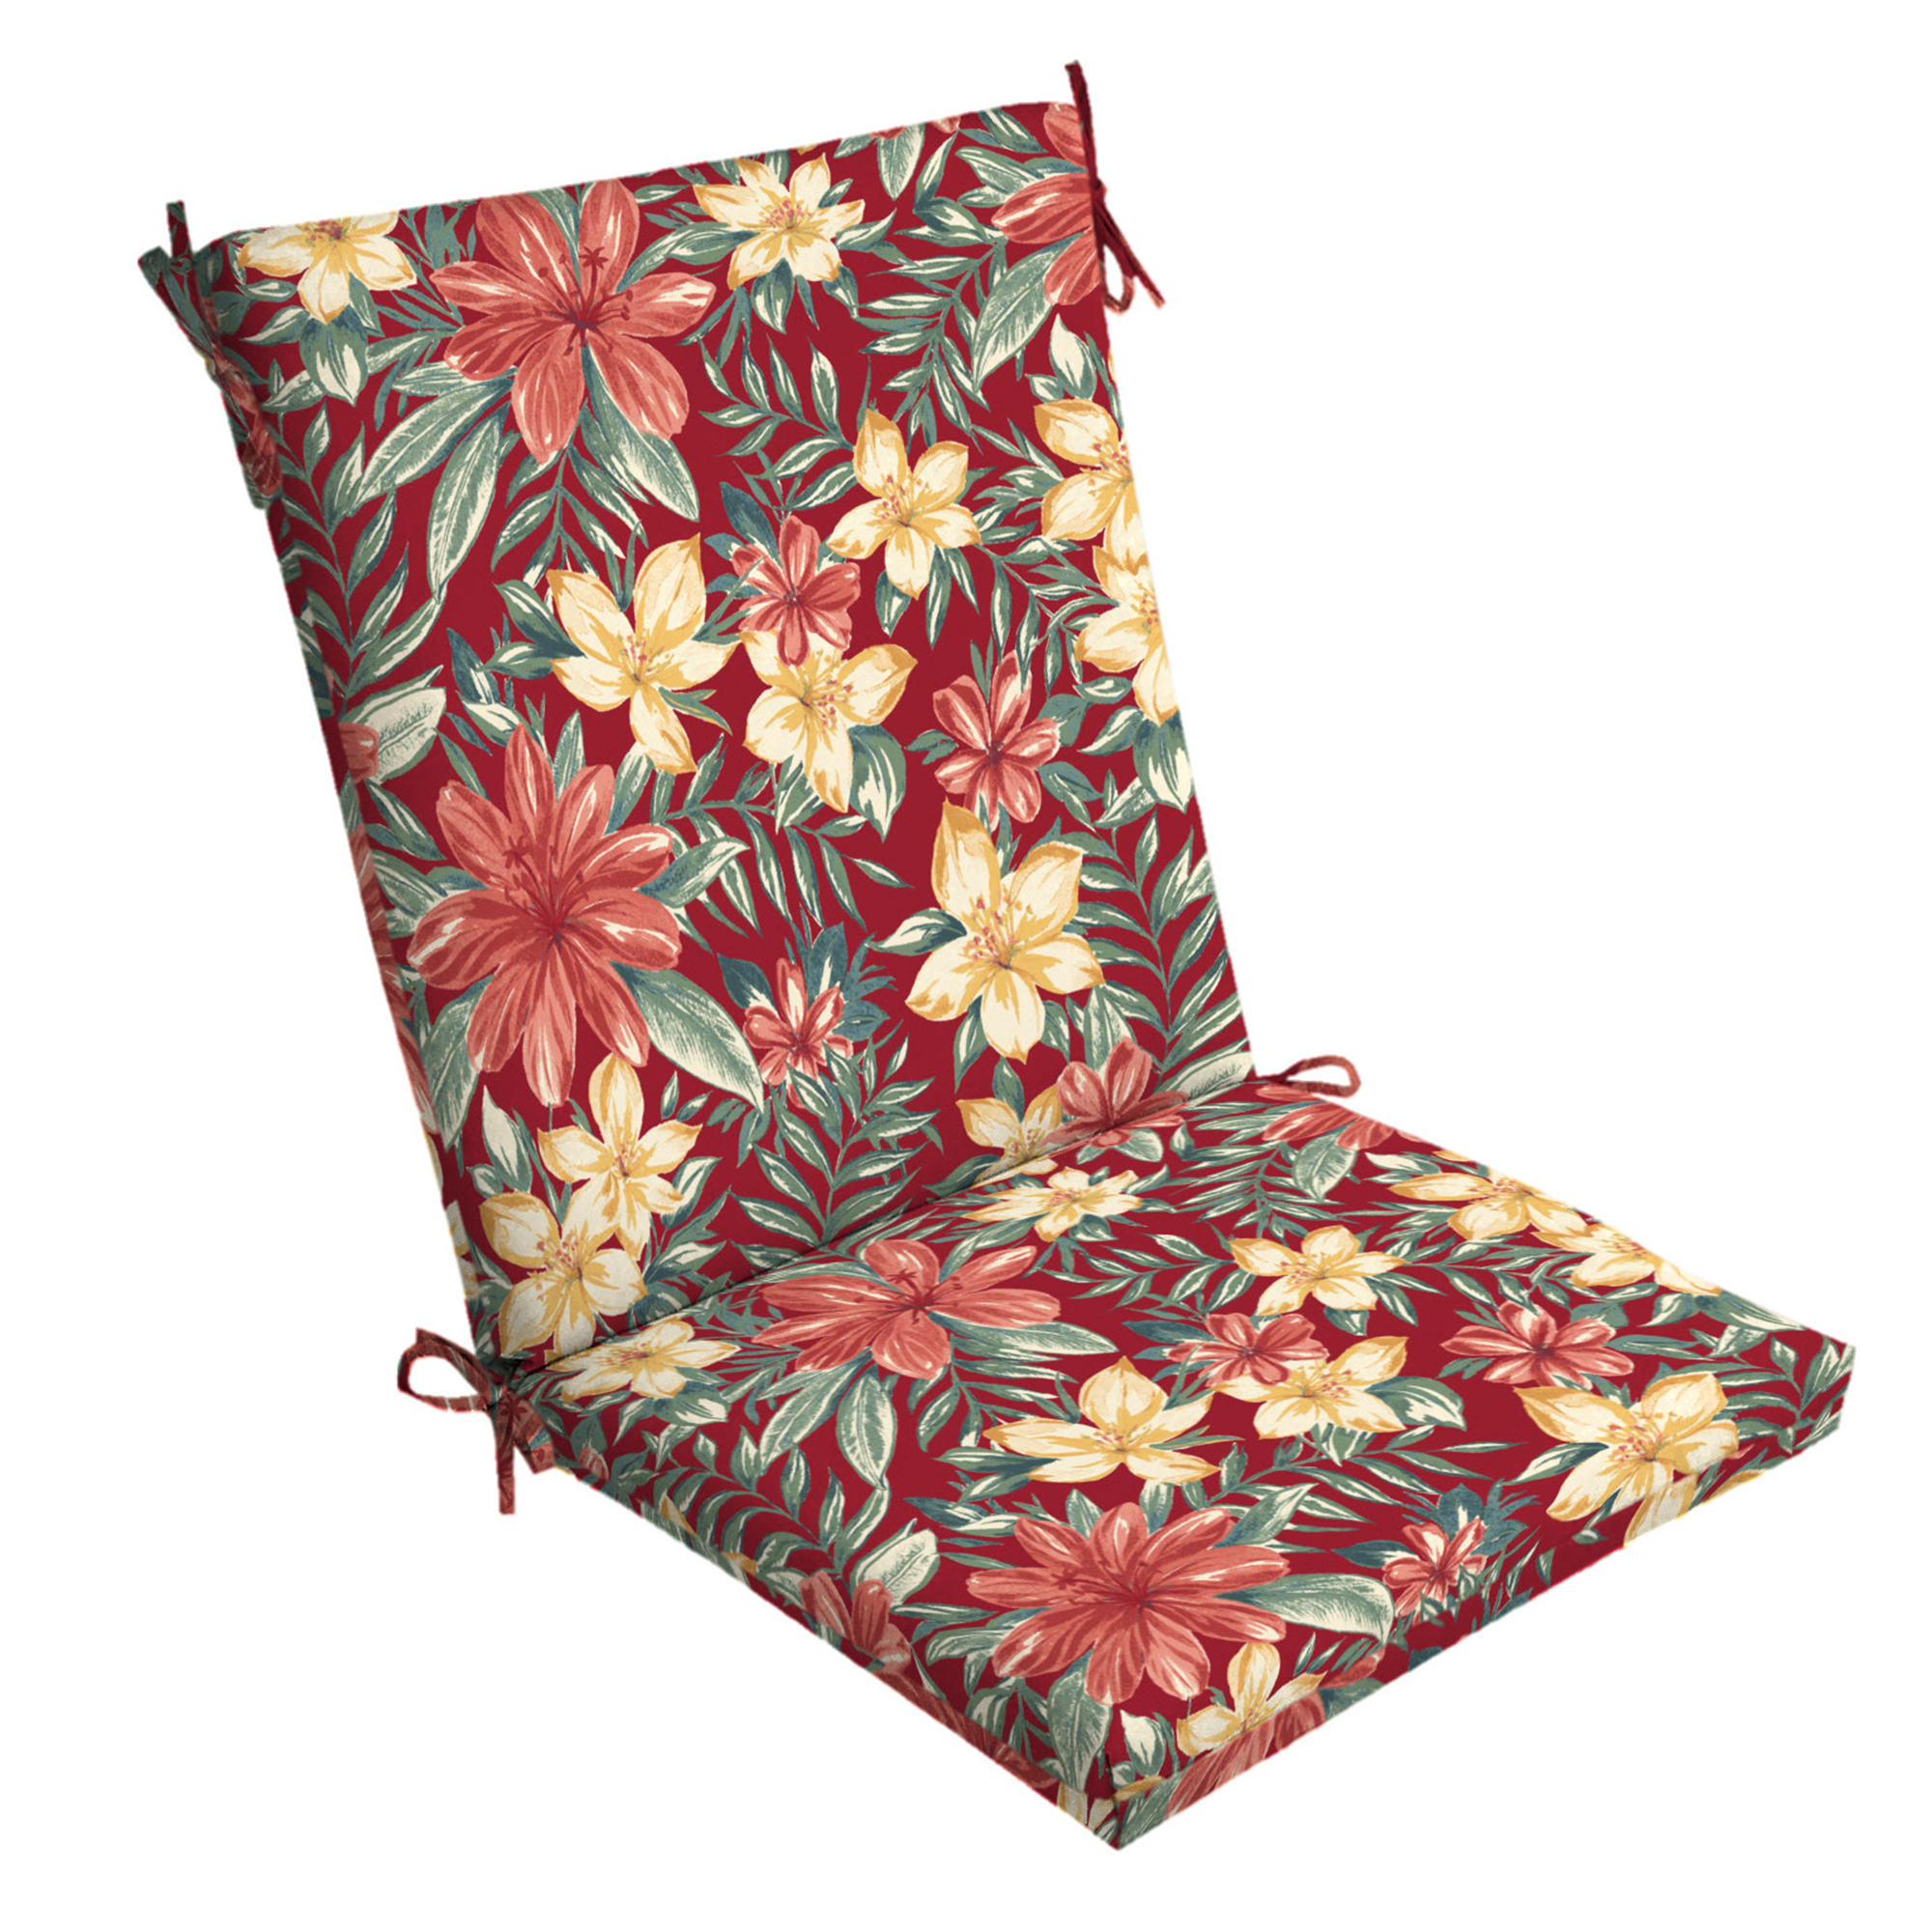 Arden Selections Ruby Clarissa Tropical 44 x 20 in. Outdoor Chair Cushion